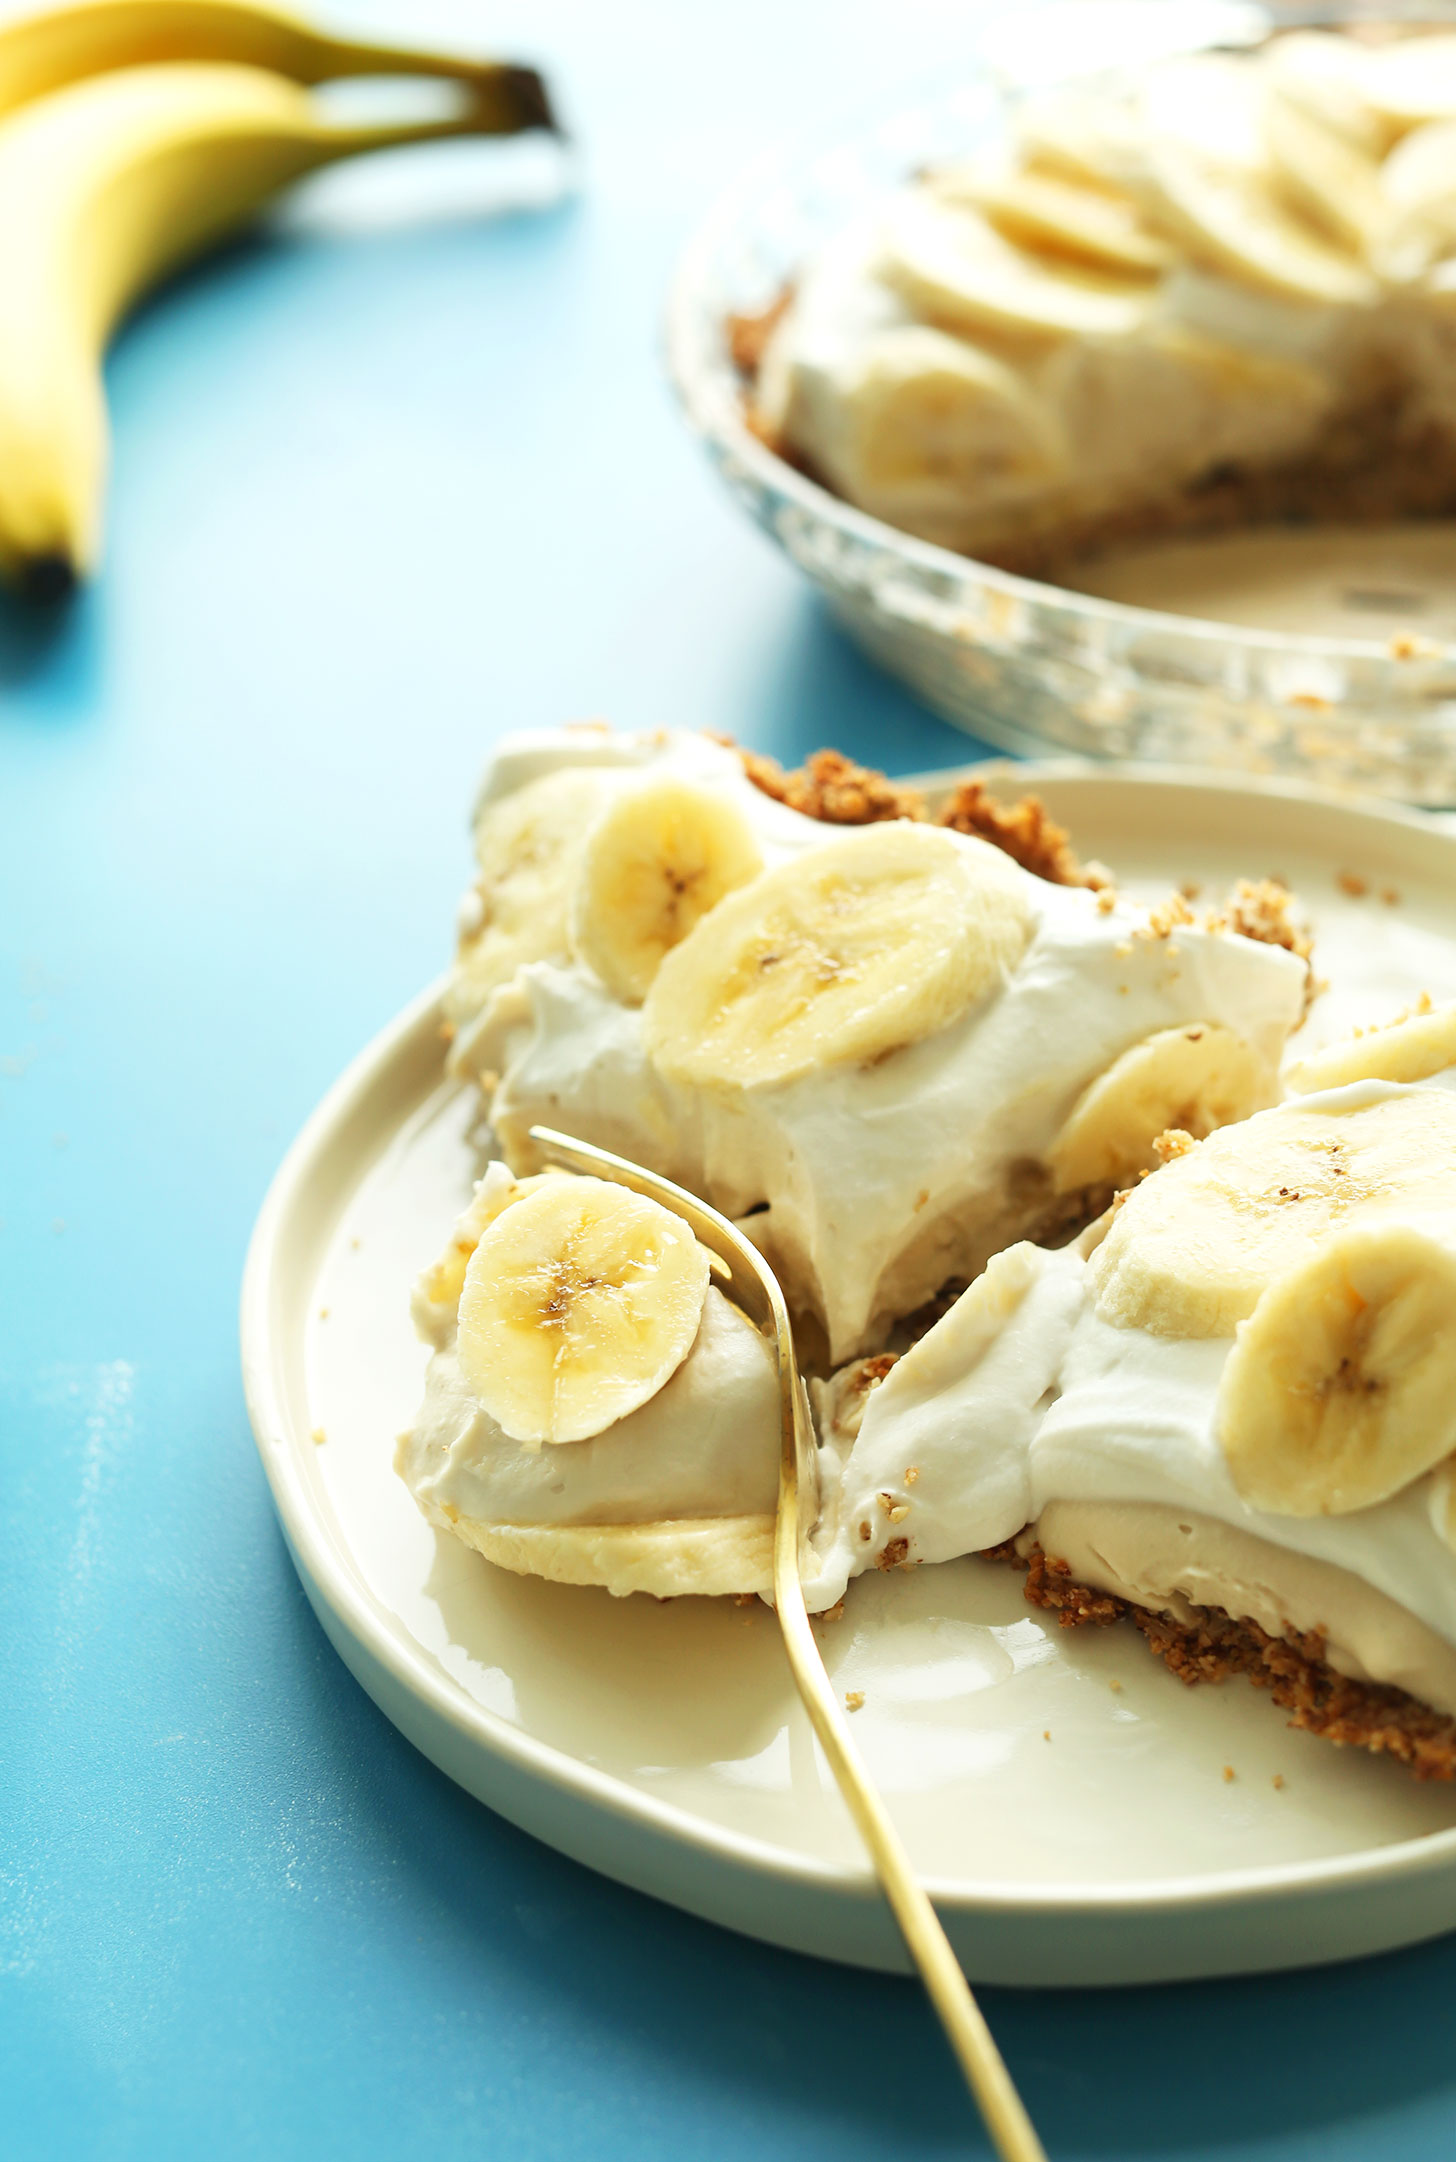 Using a fork to cut into a slice of our delicious Banana Cream PIe